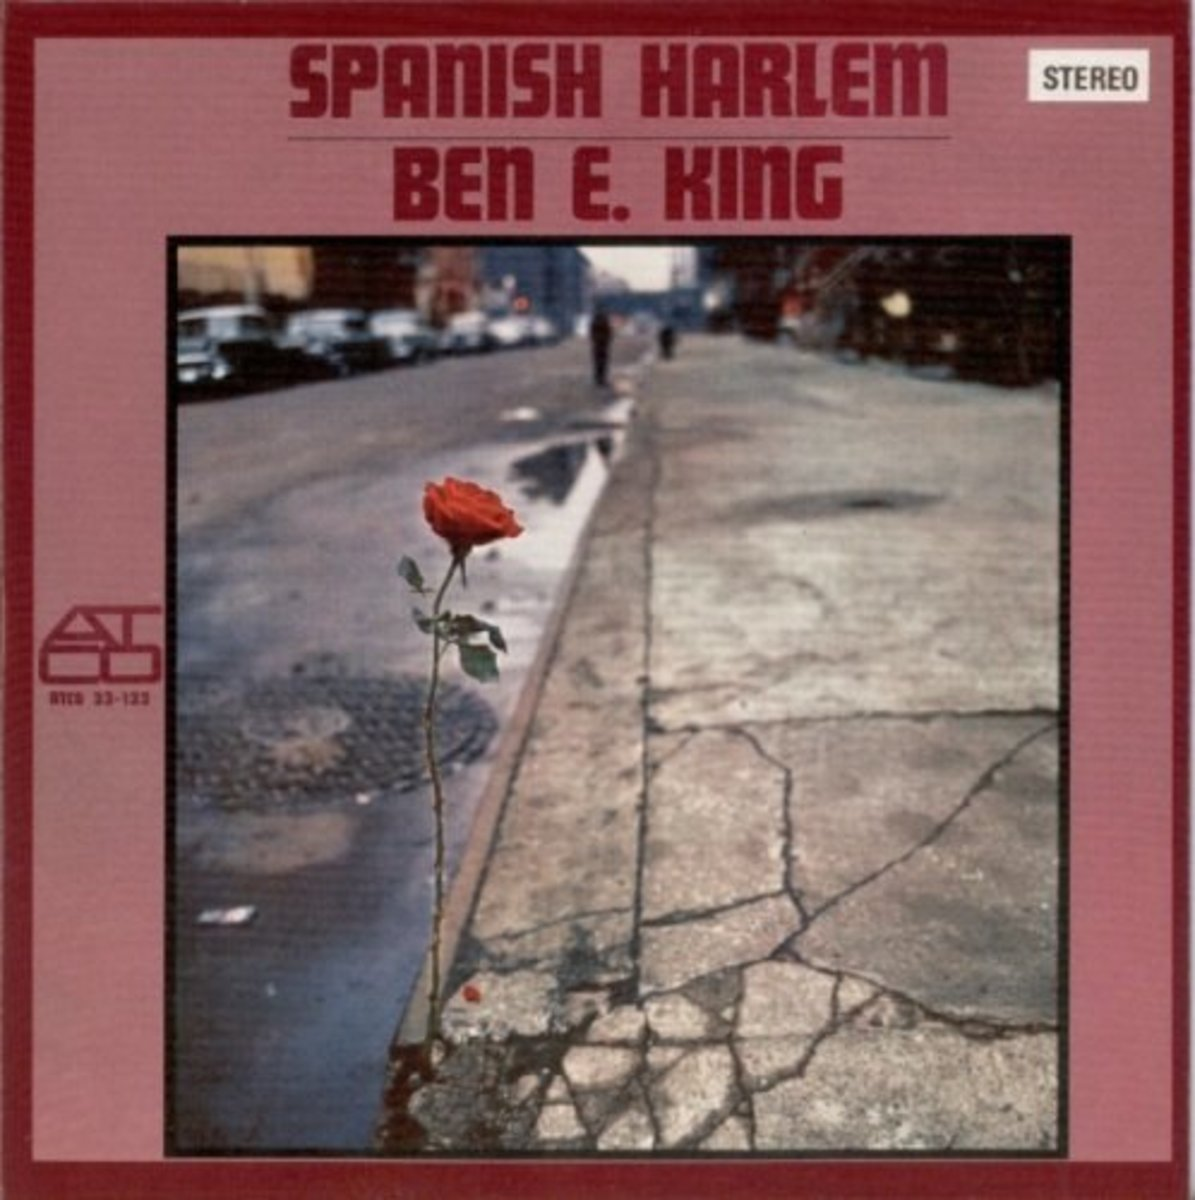 Ben E King's debut album 'Spanish Harlem' features the track 'Sway'